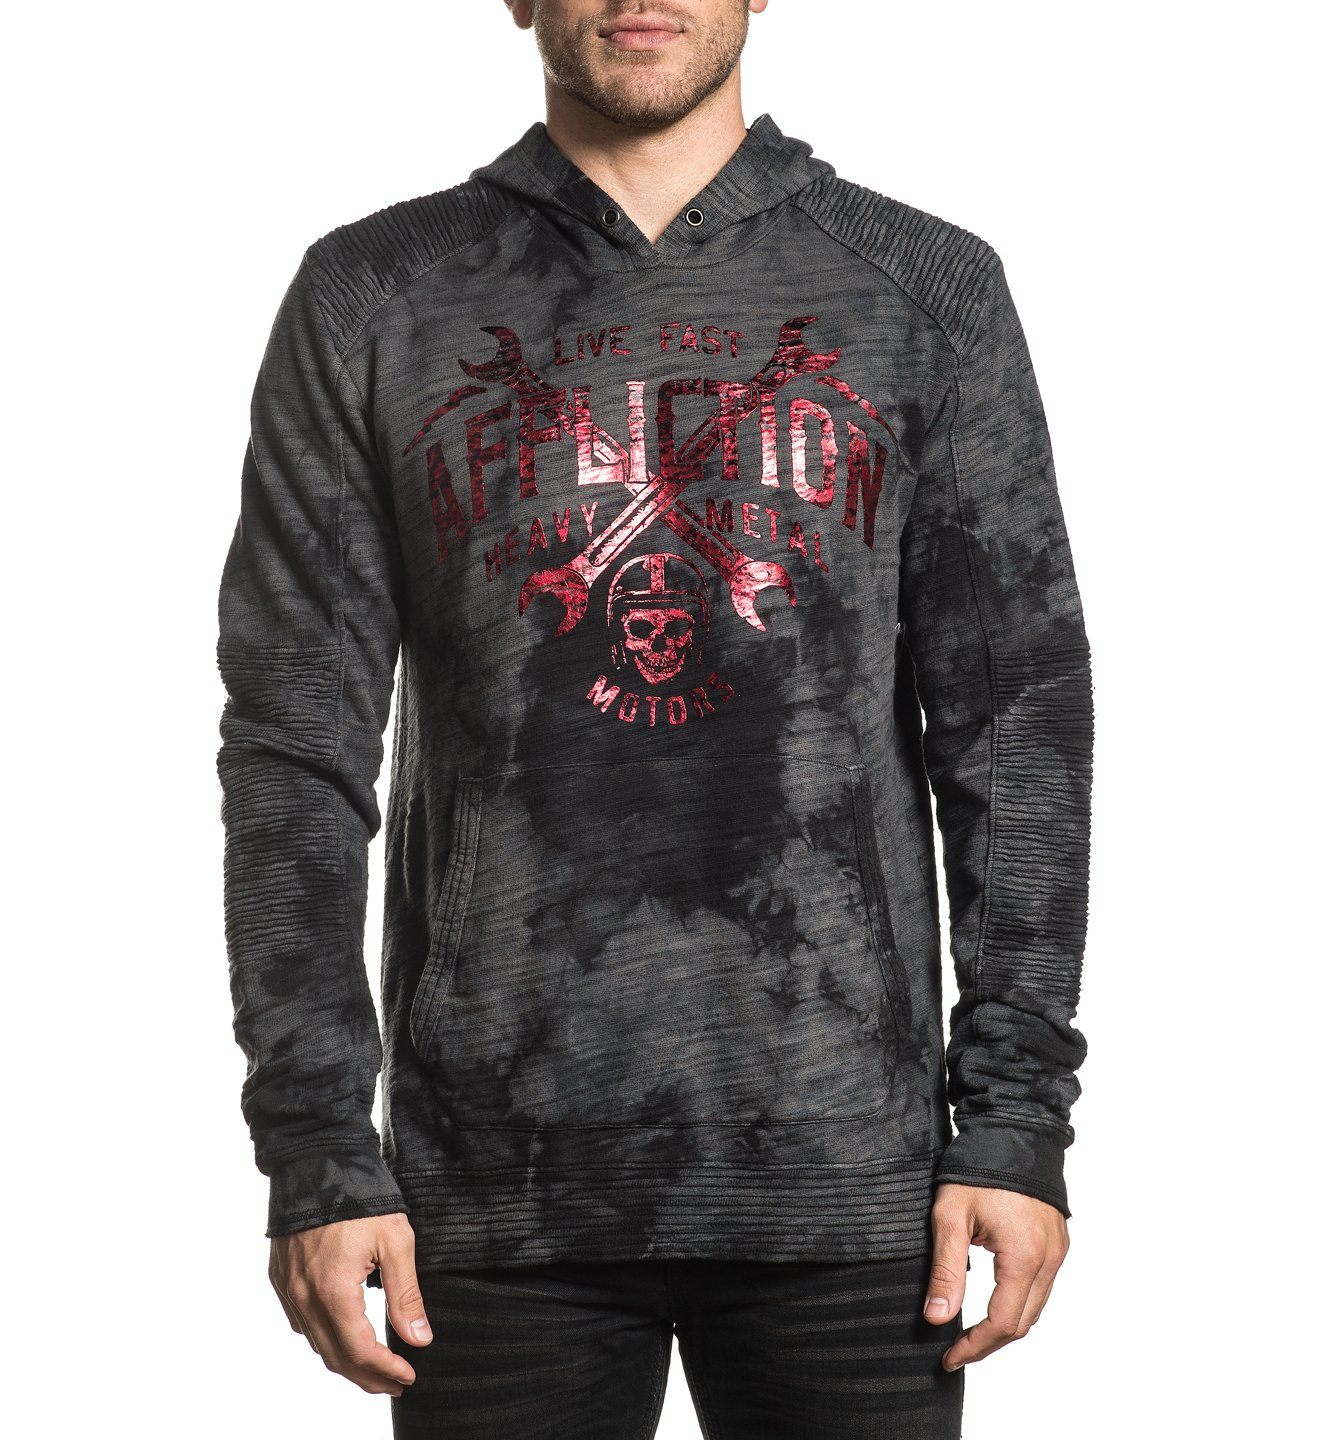 High Speed Weld - Mens Hooded Sweatshirts - Affliction Clothing